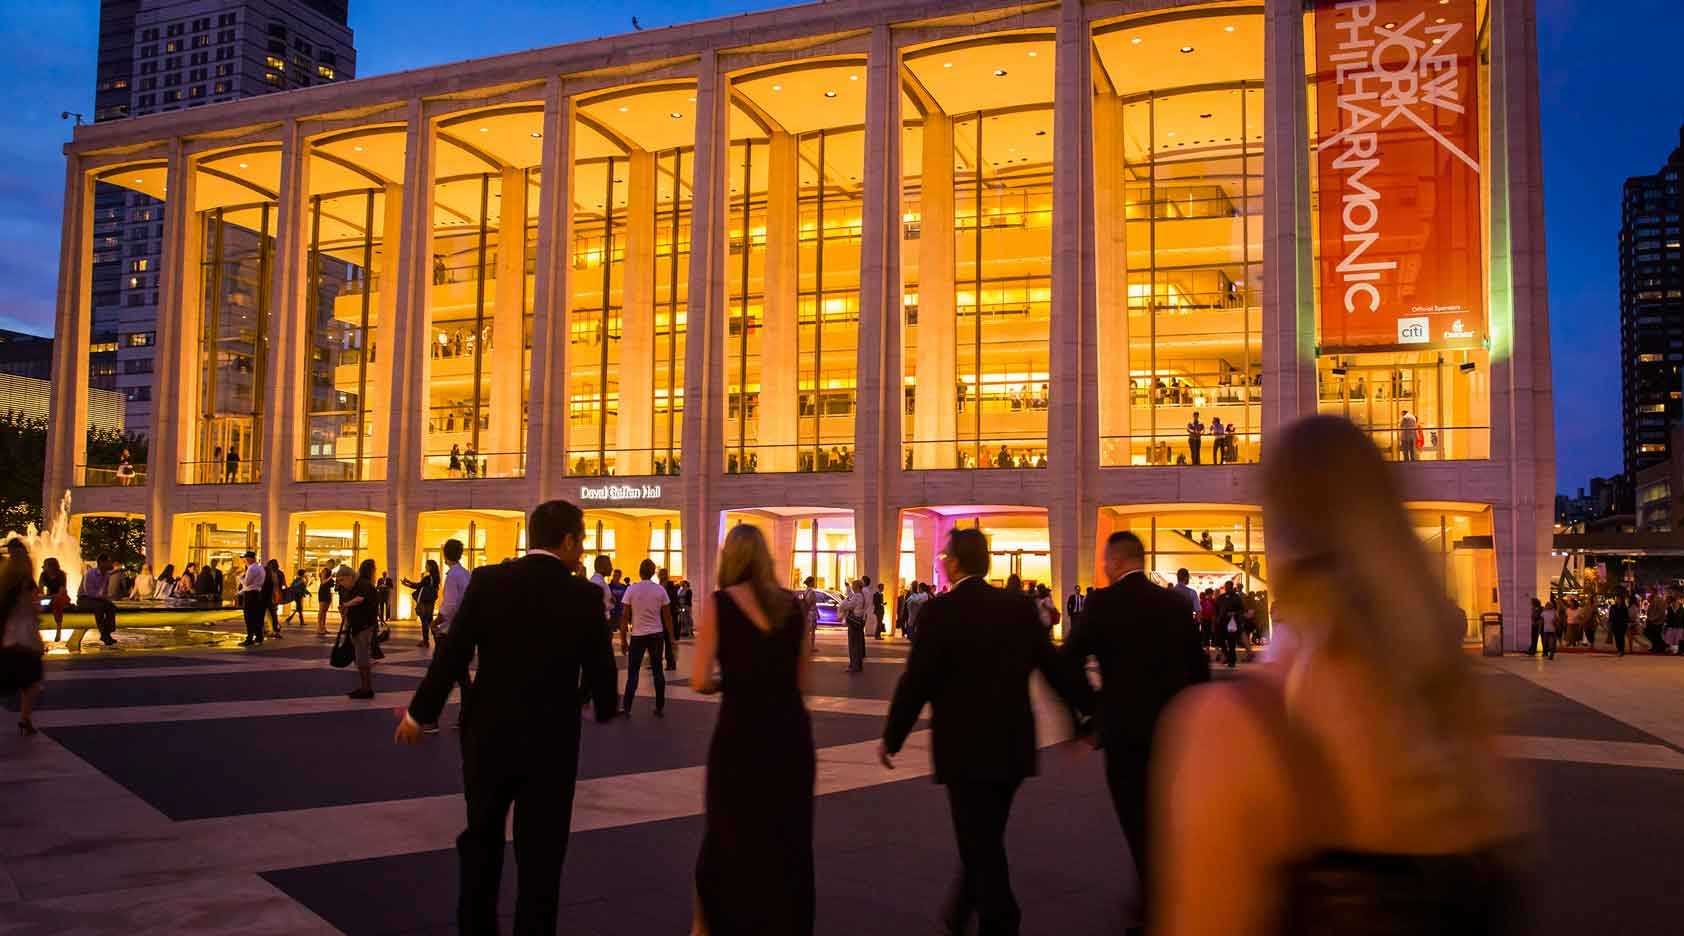 Plan Your Visit to David Geffen Hall